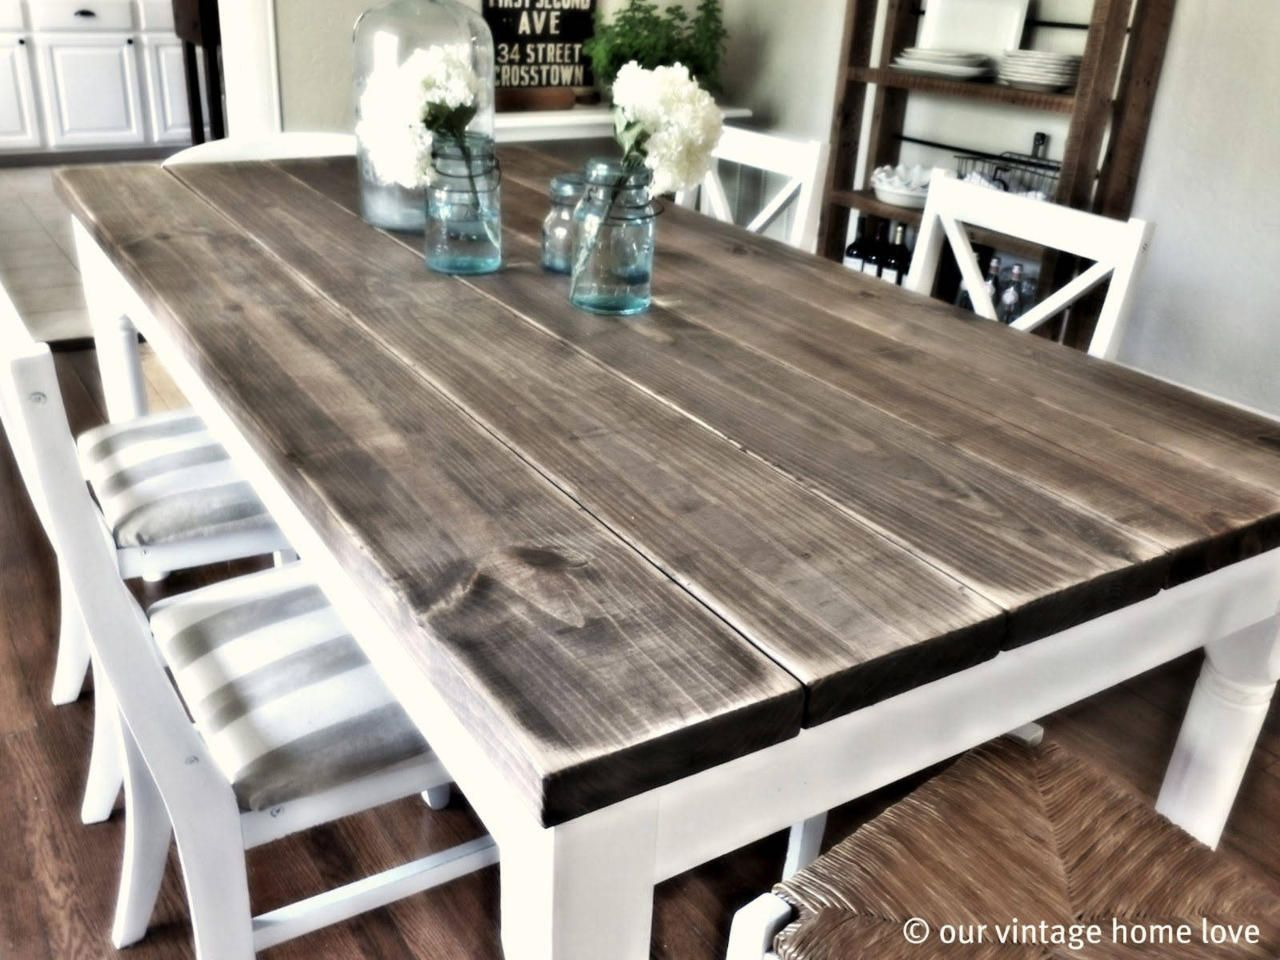 Dining Room Table Tutorial, Wood From Loweu0027s Or Home Depot, Paint, Stain .